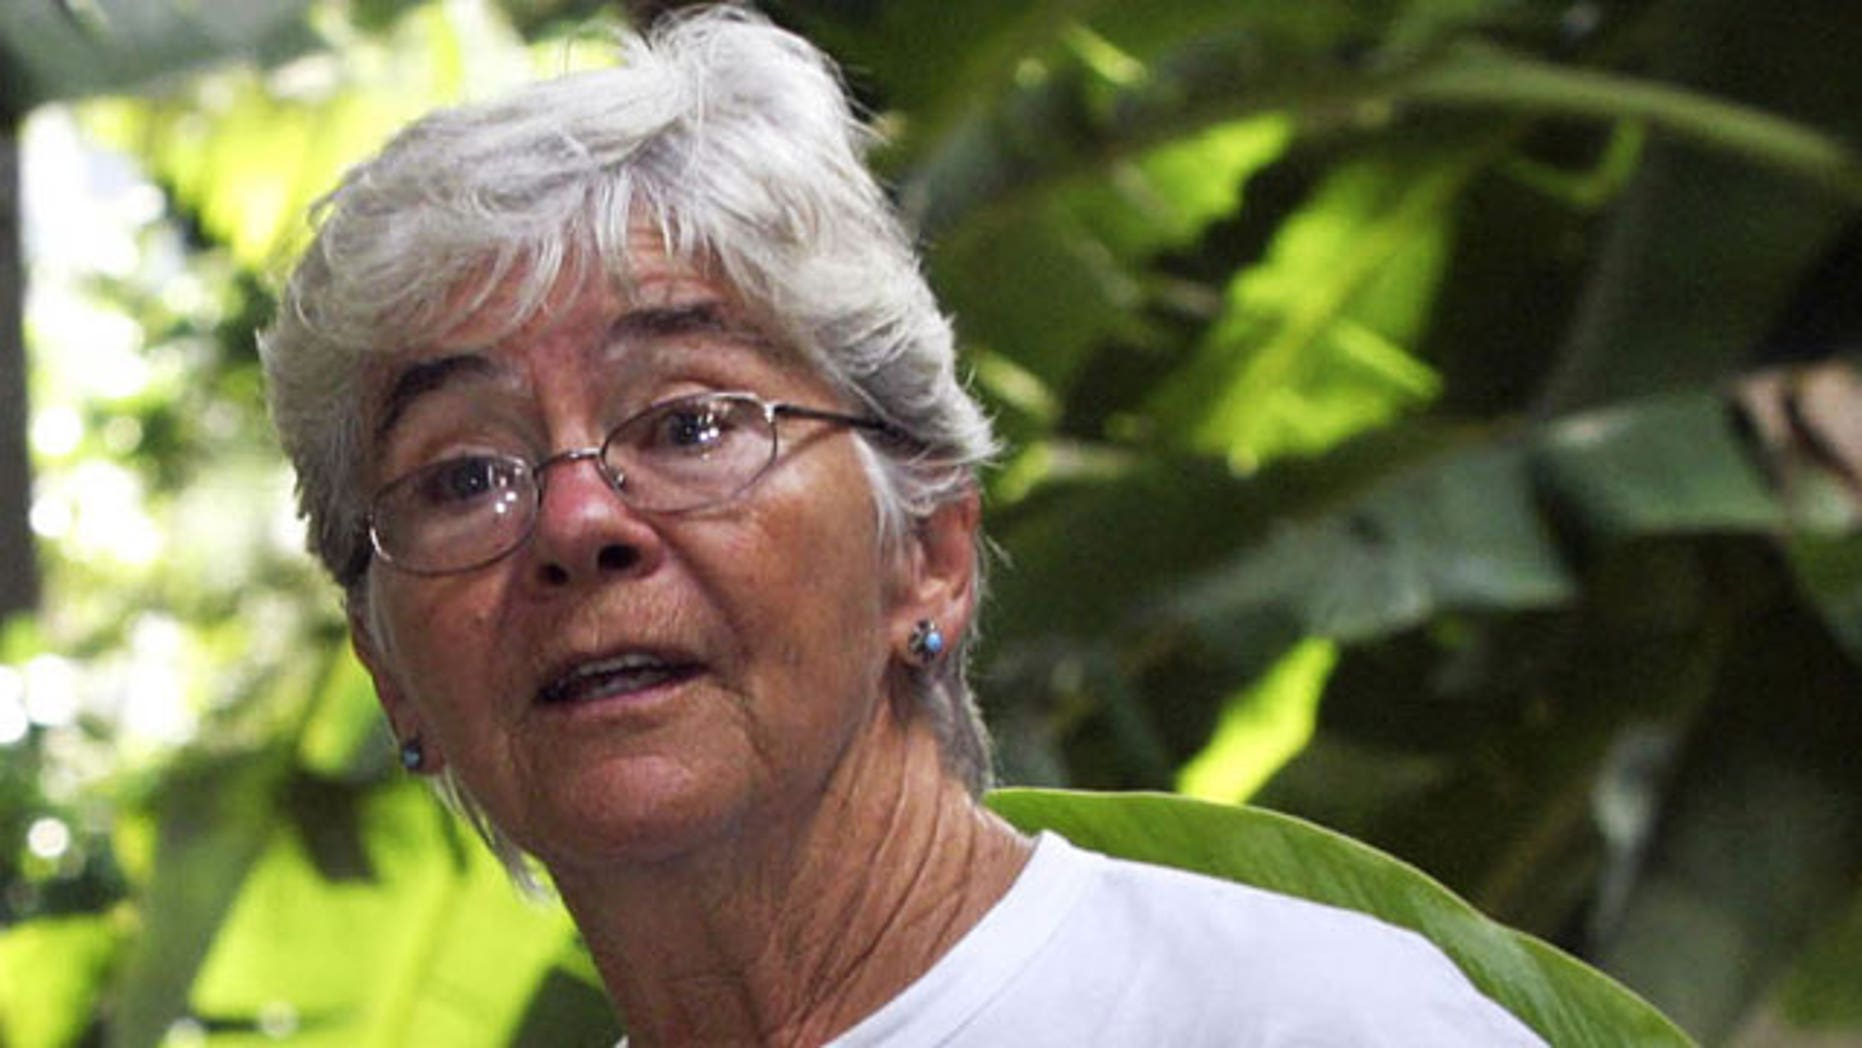 missionary sister Dorothy Stang, of Ohio, is seen before entering the Para's legislature in Belem, northern Brazil. A rancher accused of ordering the murder of Stang, a U.S. nun and Amazon defender,was found guilty and sentenced to 30 years in prison Monday April 12, 2010 in Belem, Brazil.